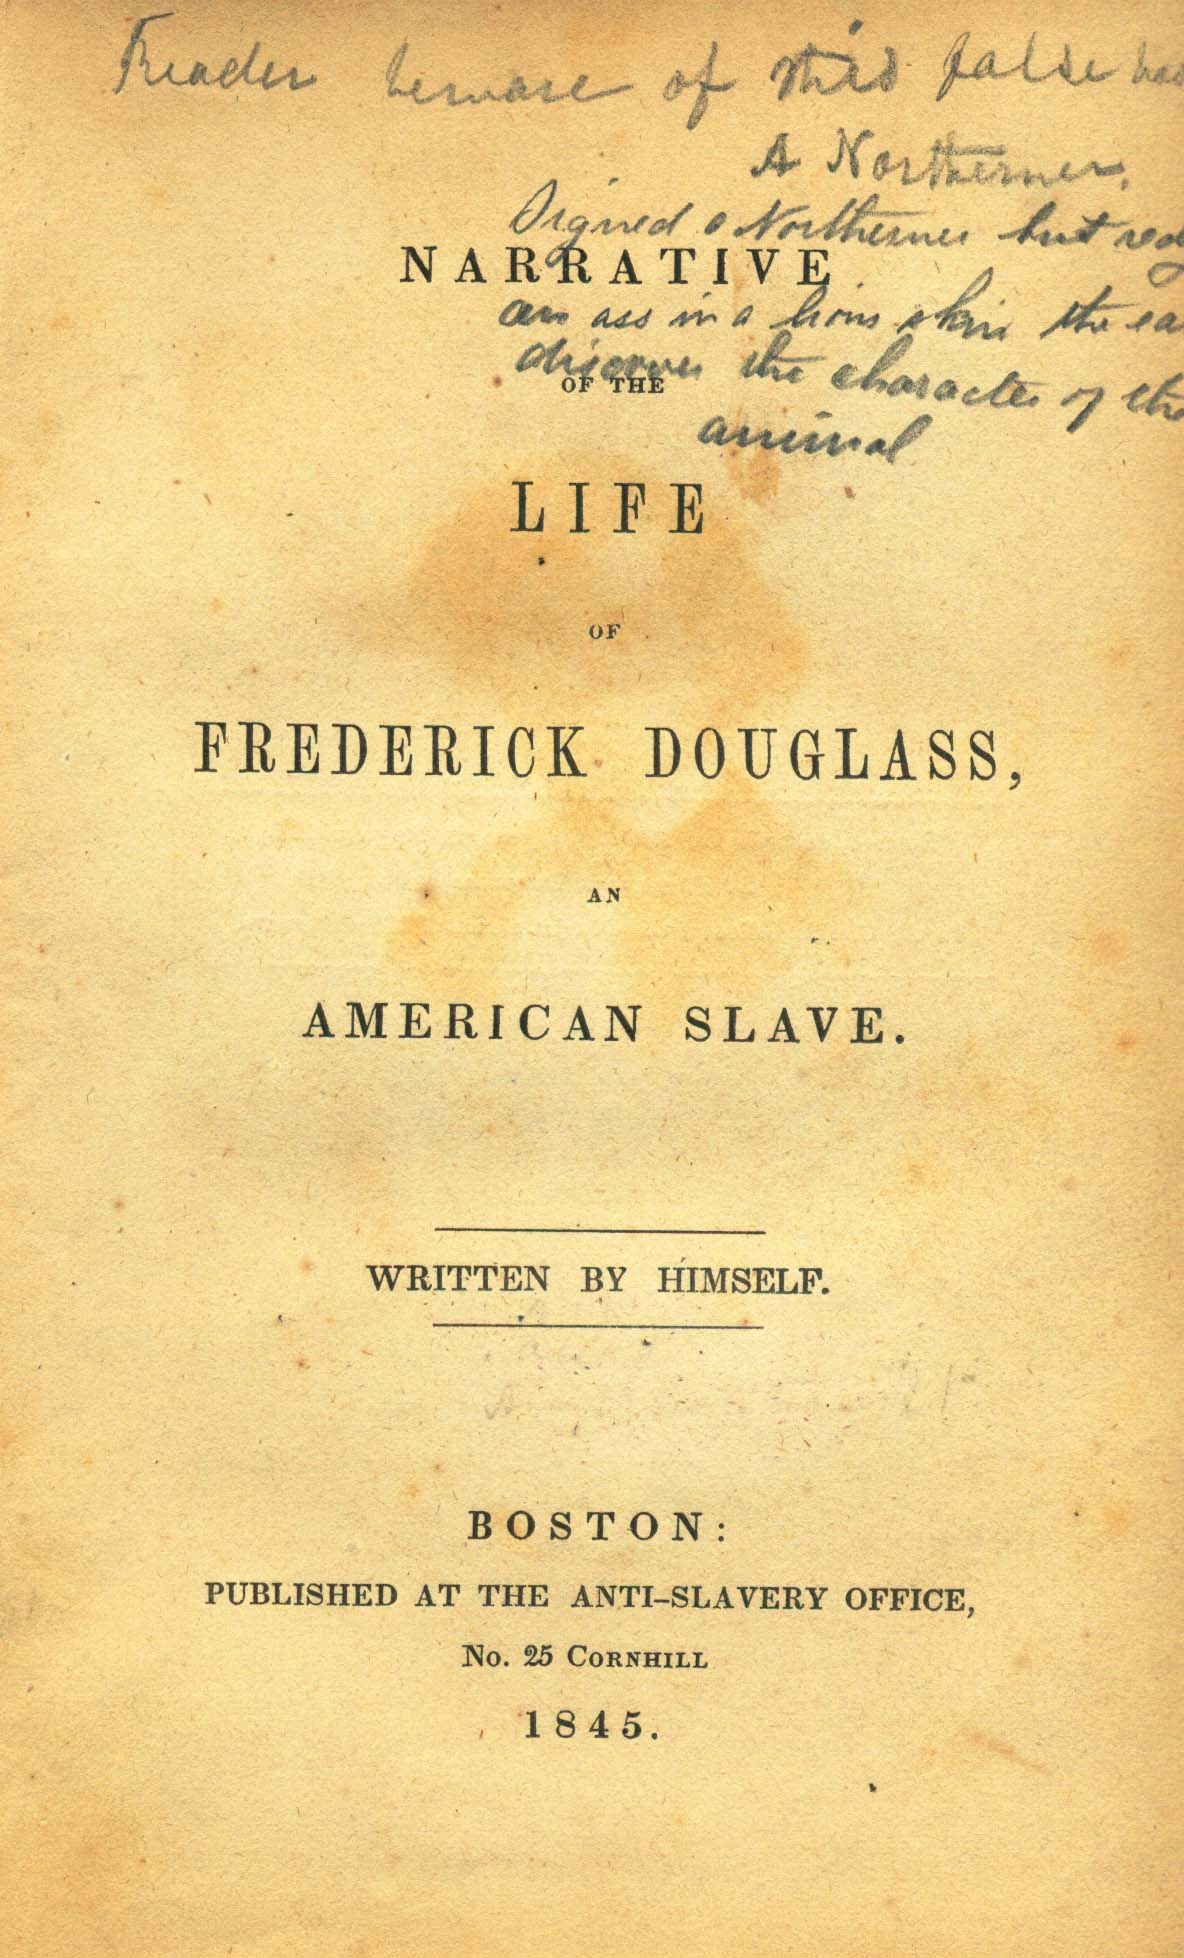 an analysis of the era of slavery in the narrative of the life of frederick douglass Douglass is born on a huge slave plantation in rural maryland, one of hundreds of slaves when we think of slavery, we usually conjure up an image of the deep south, or the old south, places like.